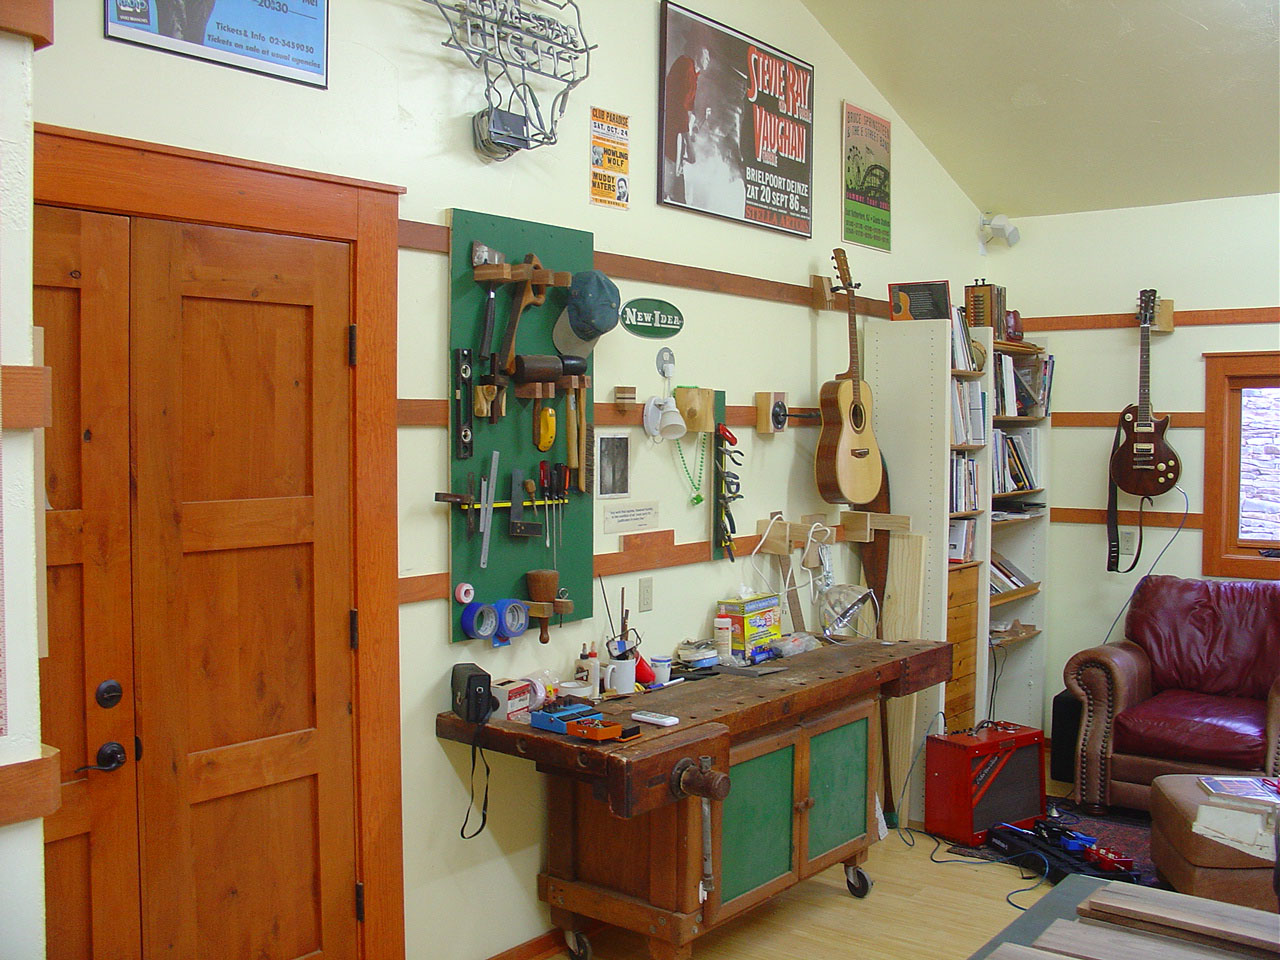 Workshop Organization  Shaker peg rails